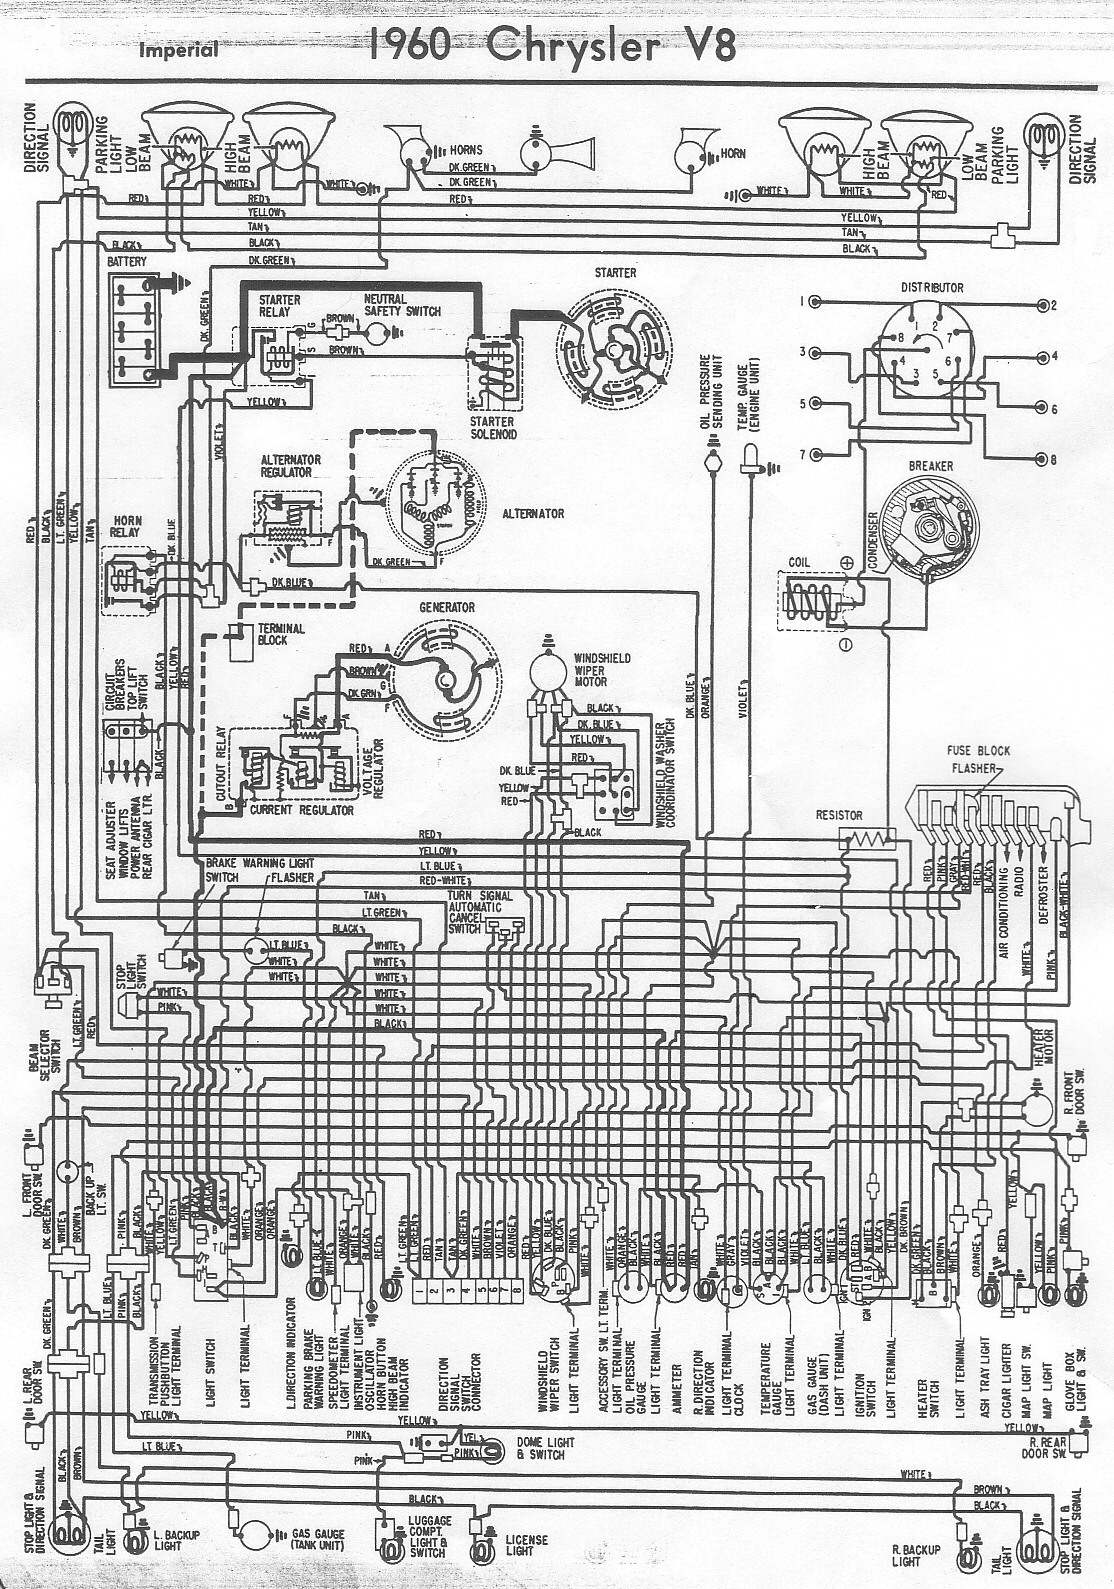 ac wiring diagram honda civic electric window diagrams free auto diagram: 1960 chrysler v8 imperial